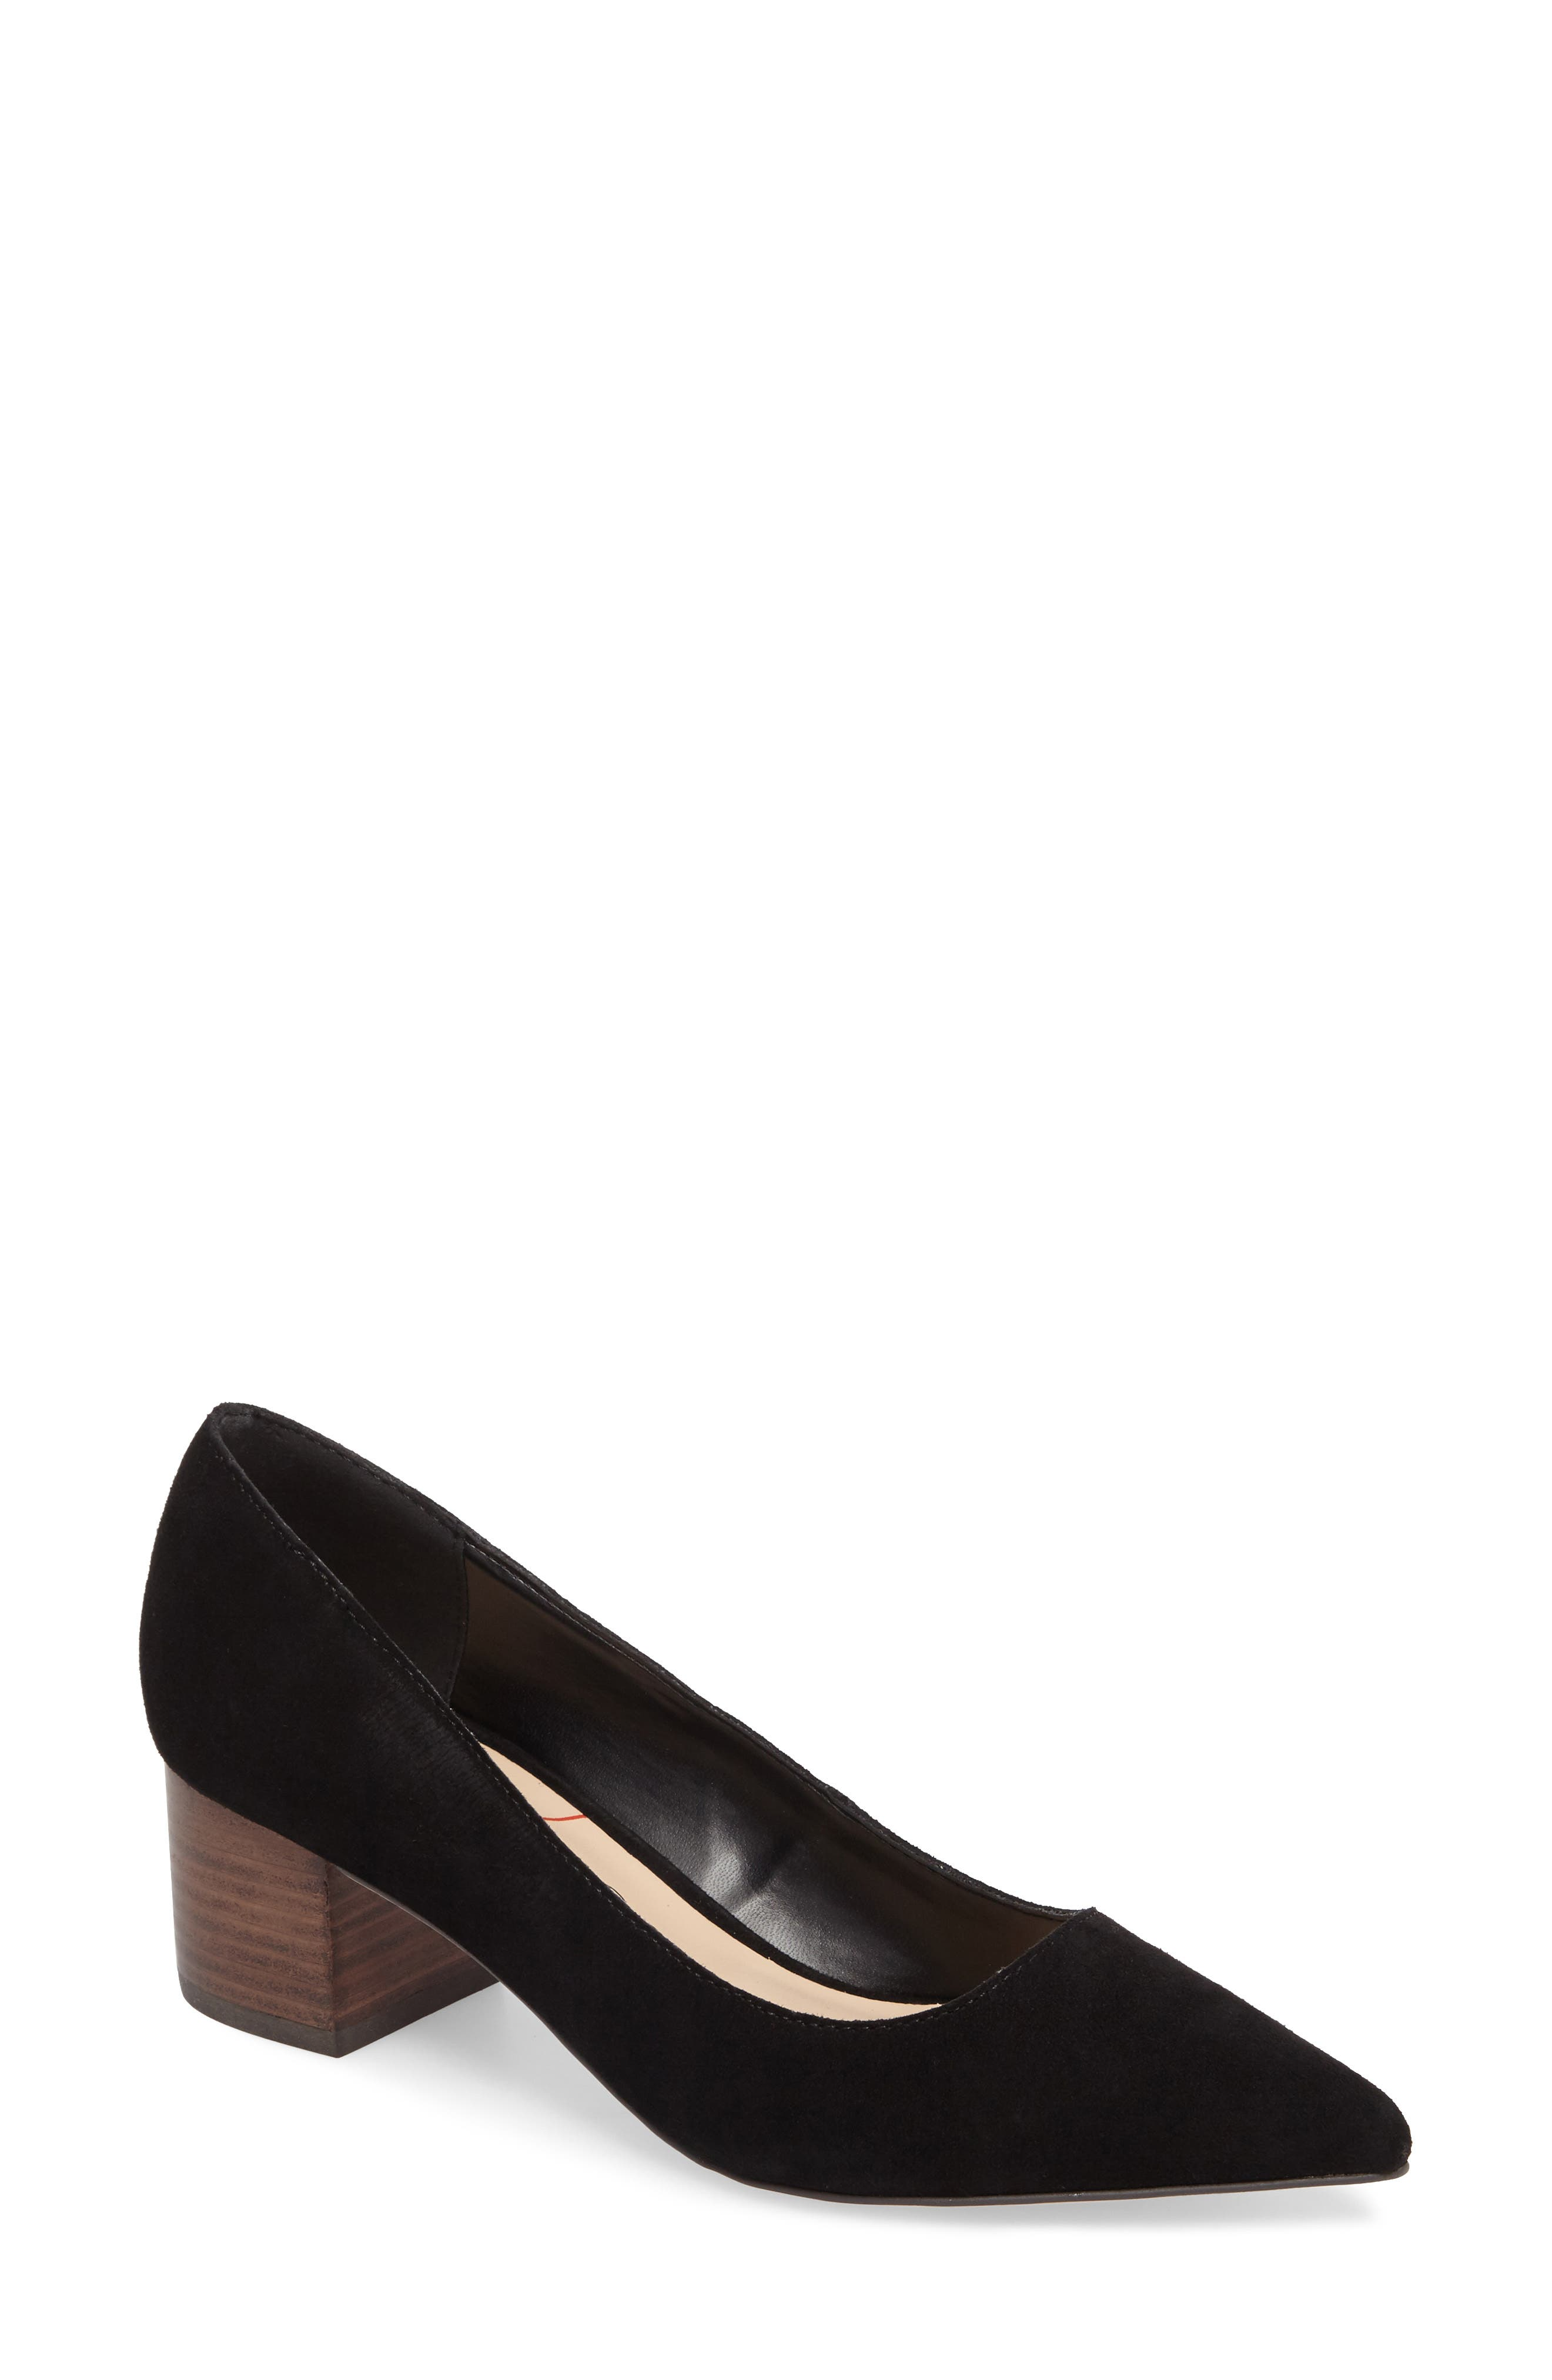 Main Image - Sole Society Andorra Pump (Women)